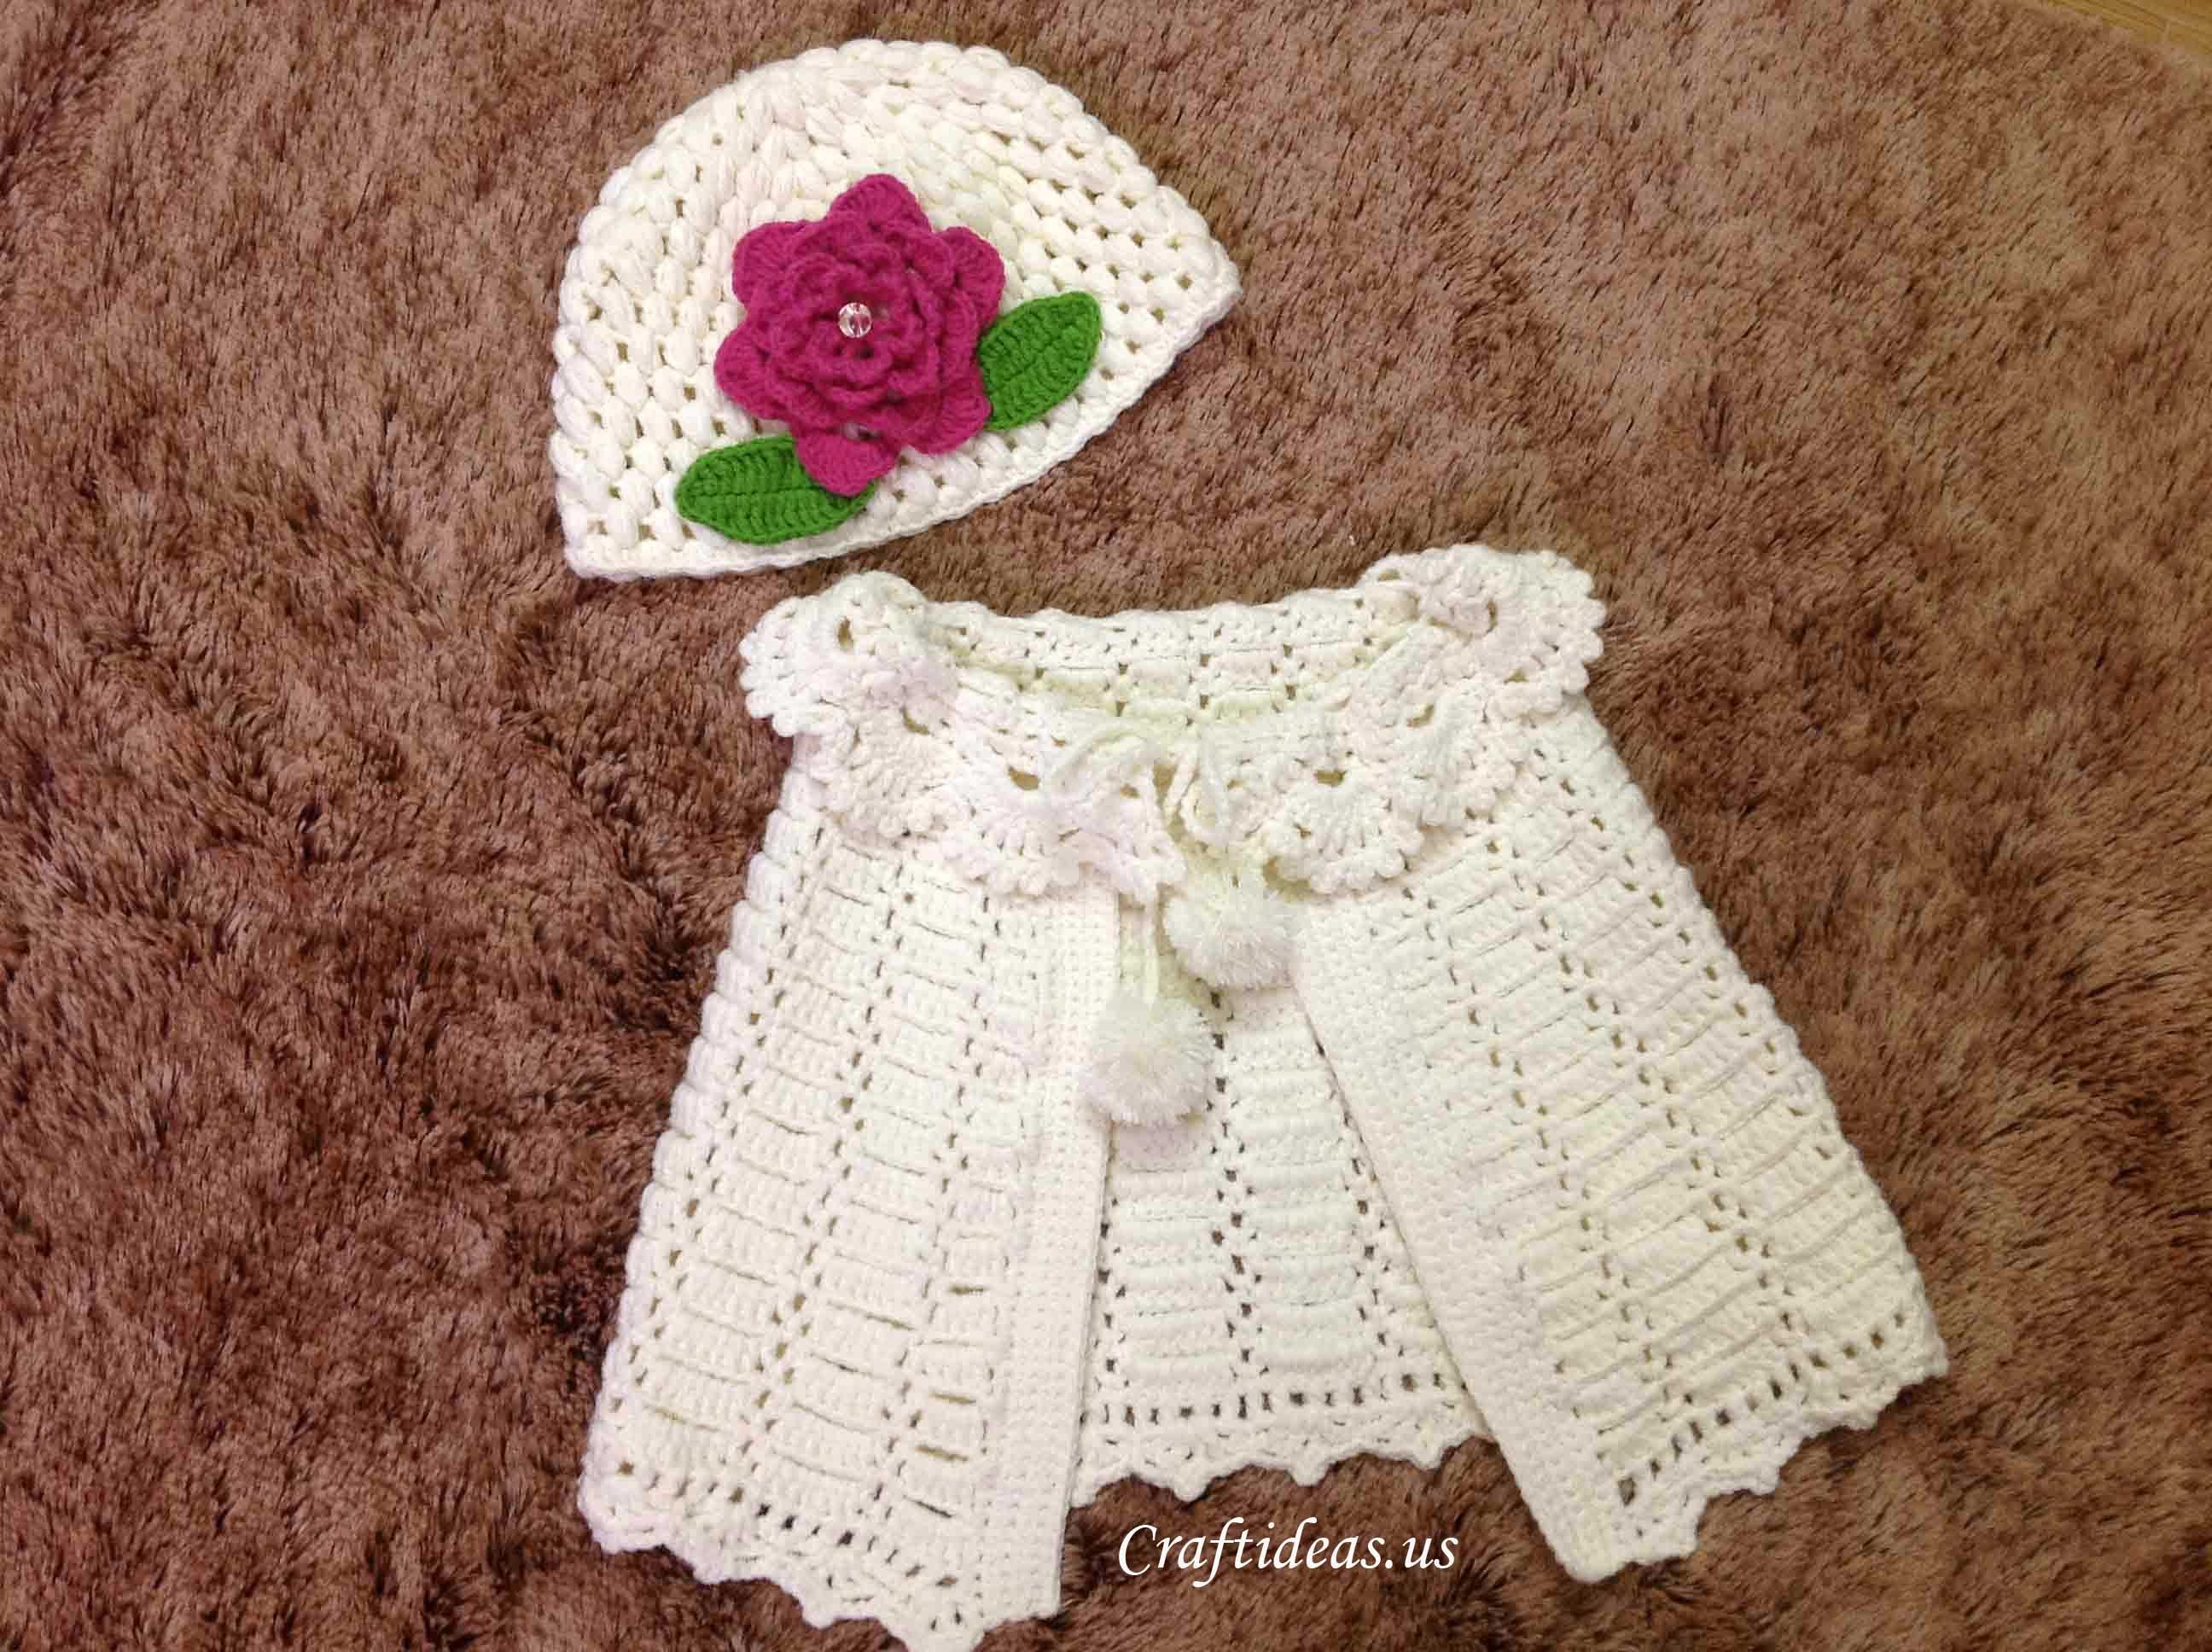 Crochet spring poncho crochet pinterest ponchos crochet and crochet spring poncho for little girls bankloansurffo Choice Image